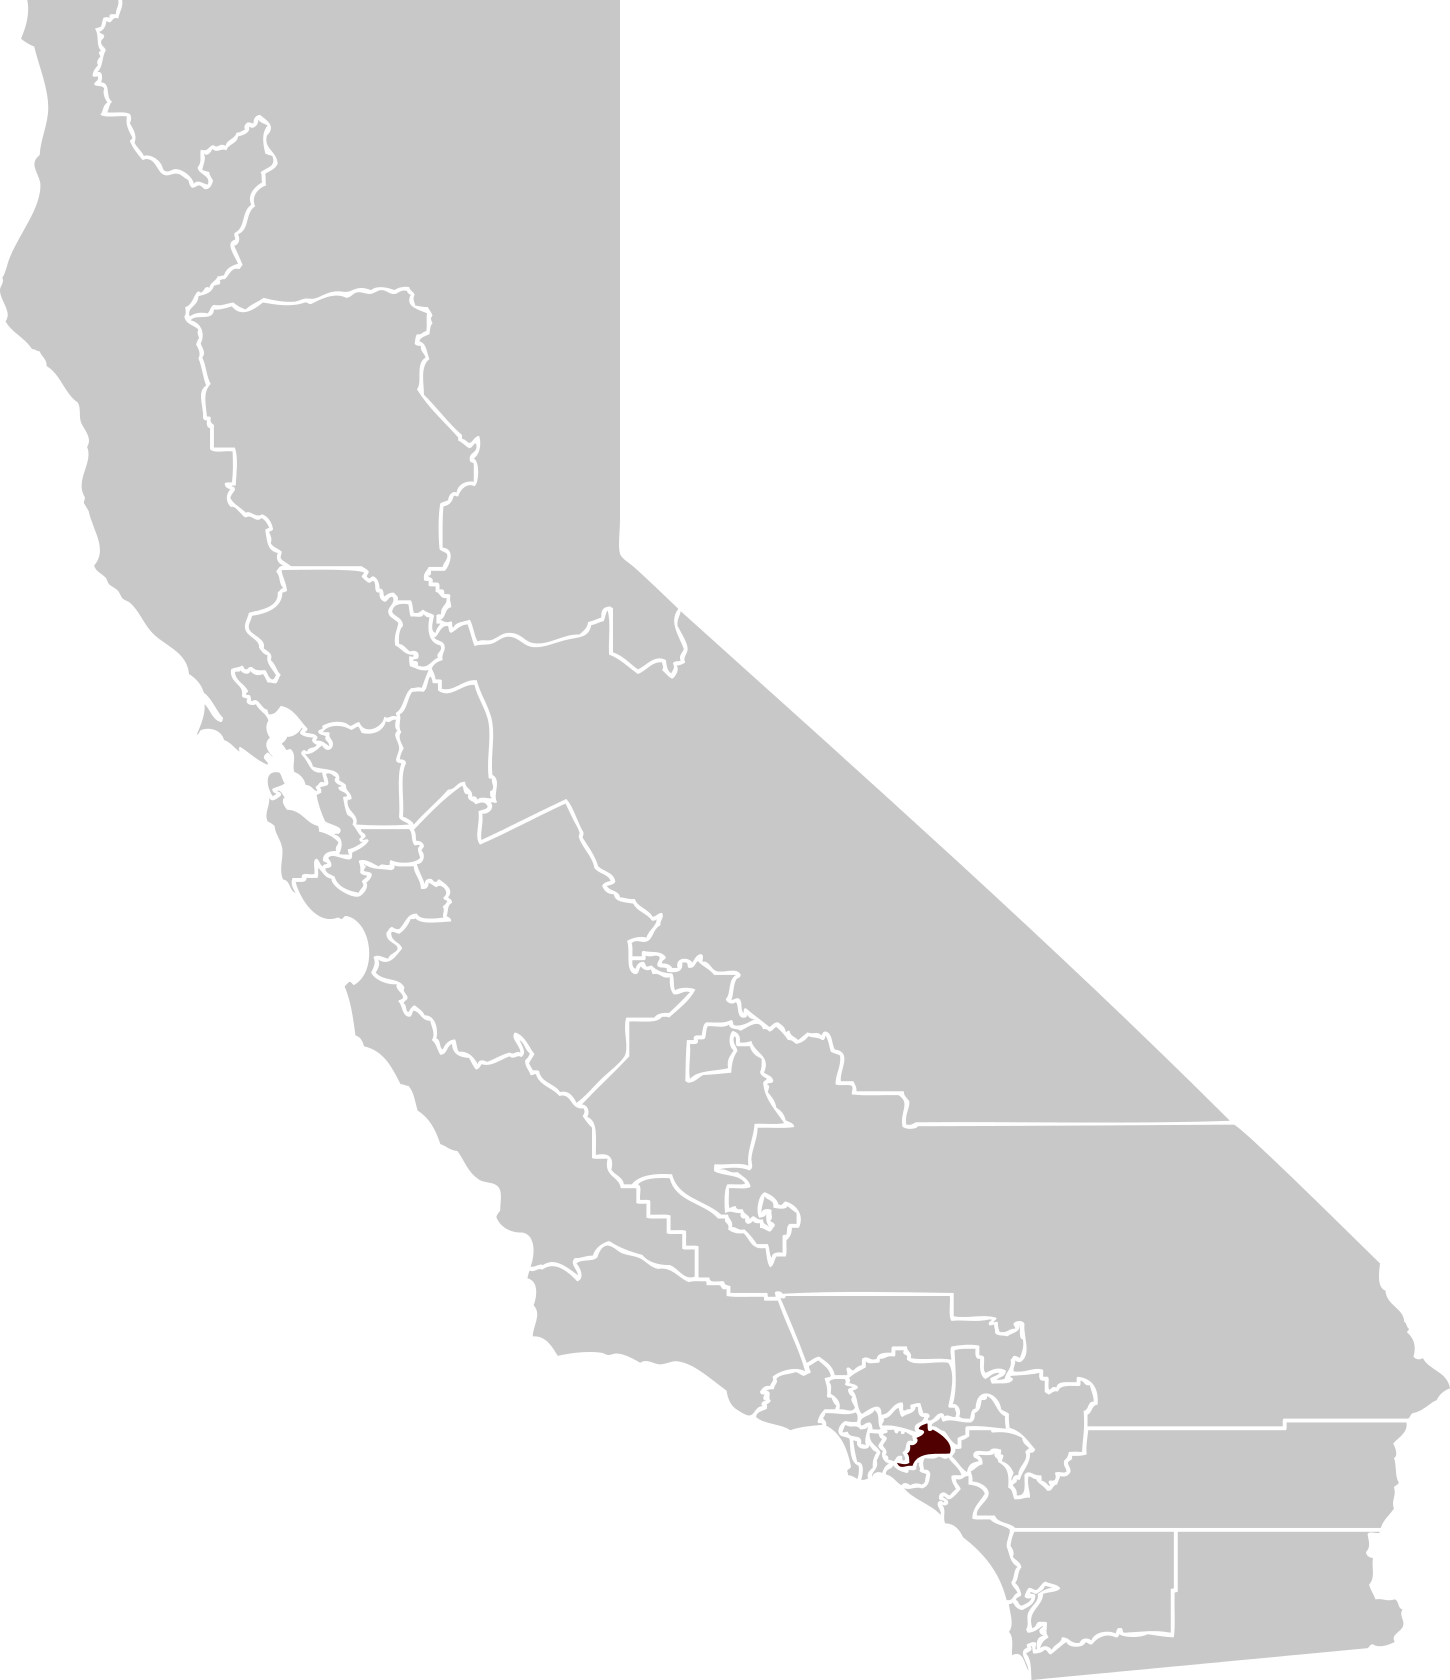 California map png. Image transparentpng